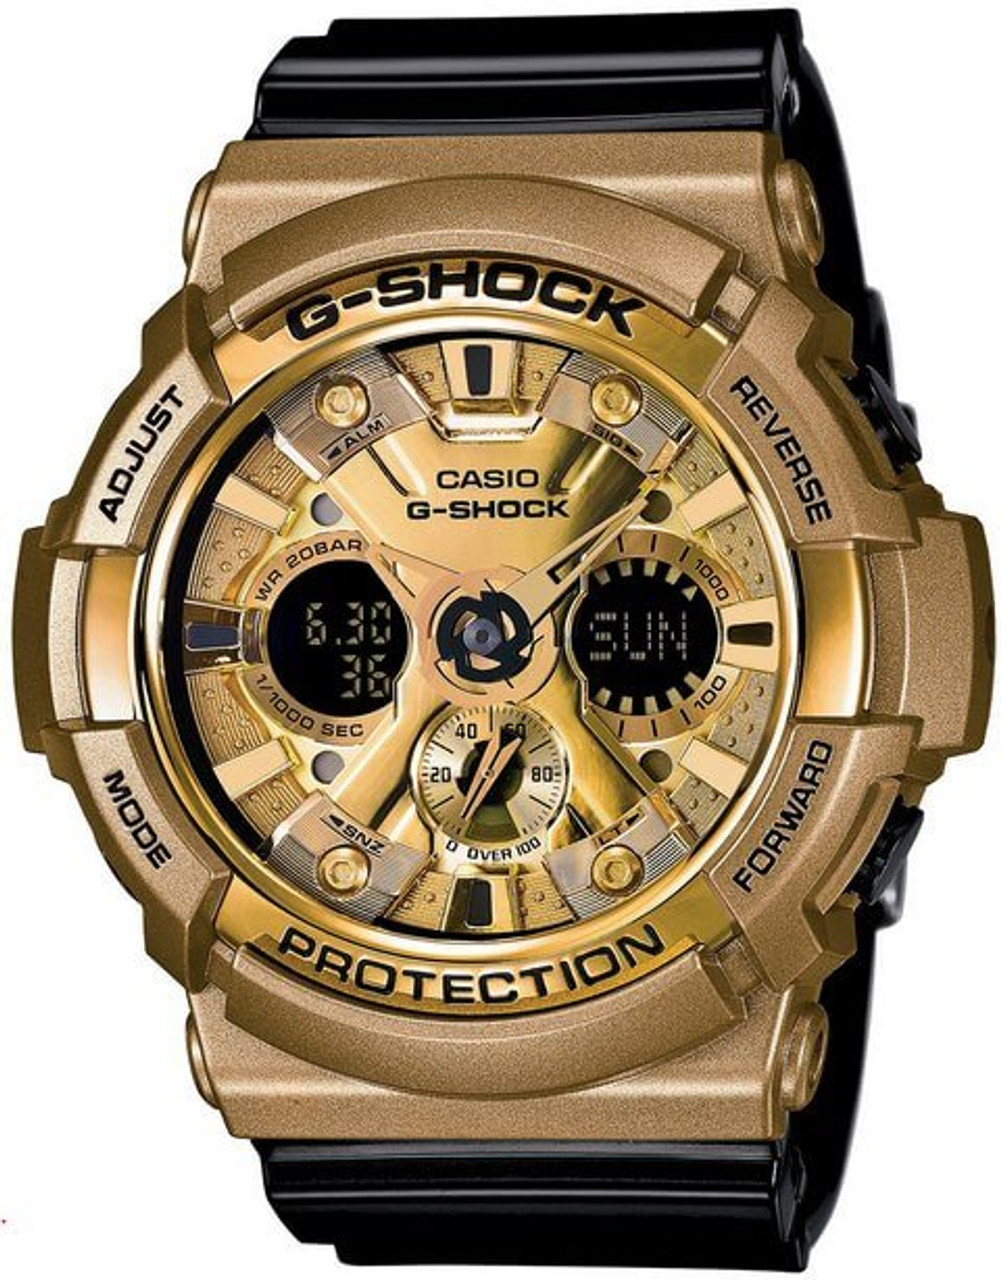 Casio G-Shock GA-200GD-9B2JF Watch